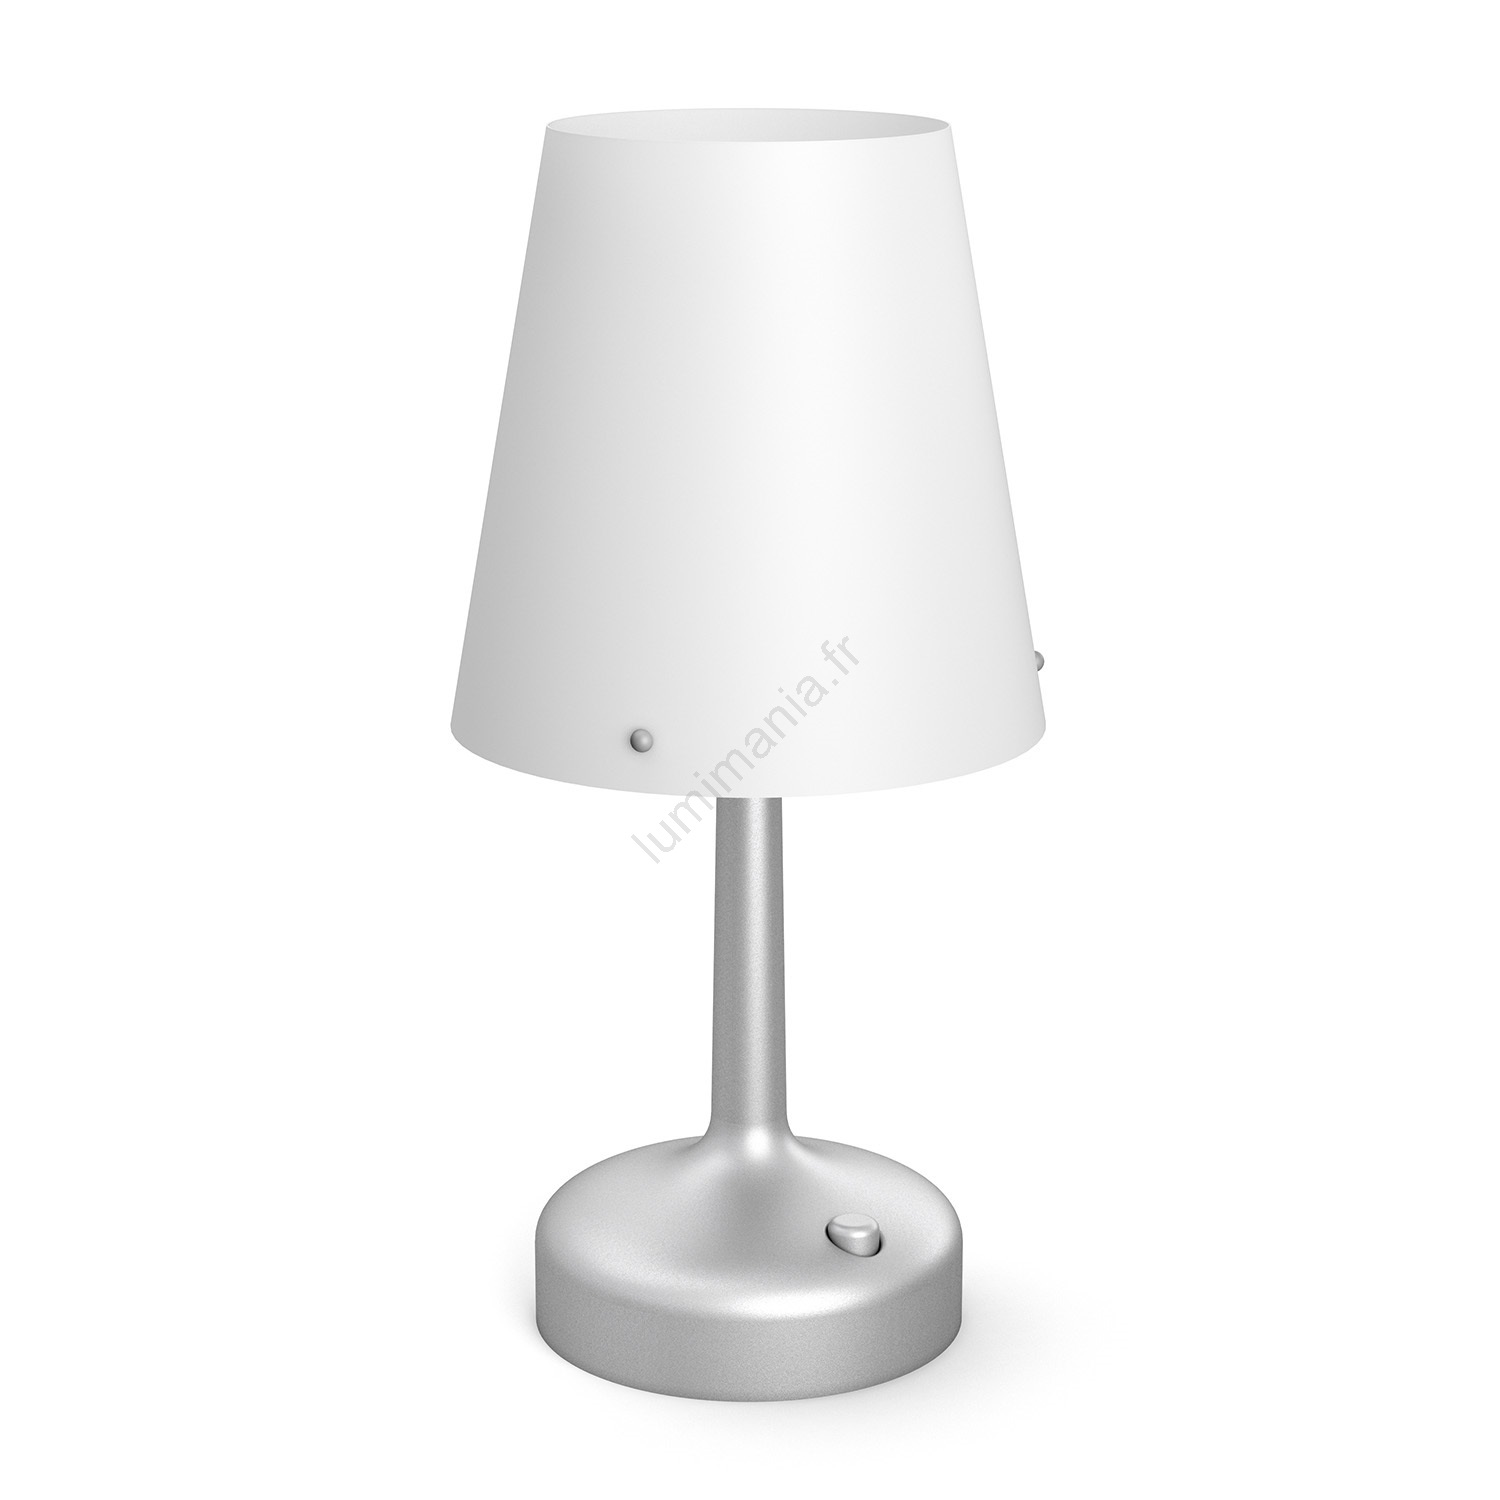 Lampe 7179648p0 Portable De Philips Myliving Led0 6w3xaa Table 8Pwk0nO